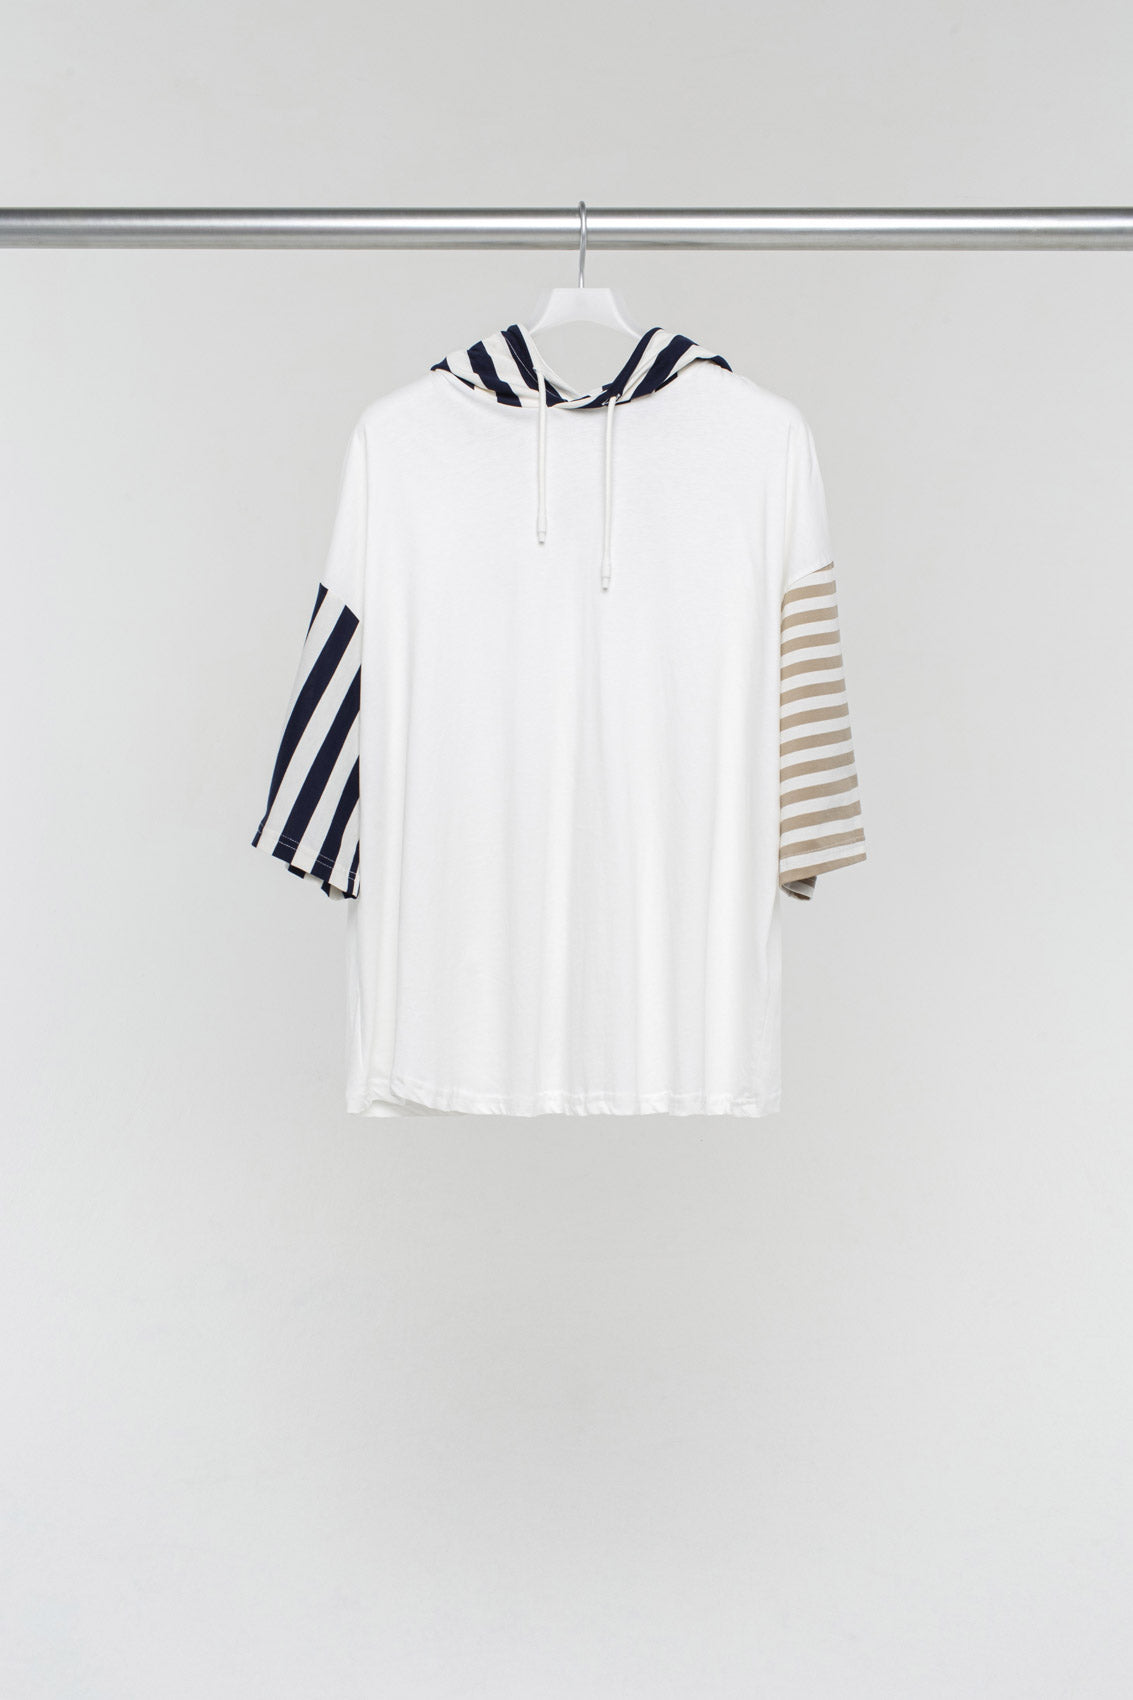 HOODED T-SHIRT WITH STRIPED DETAILS